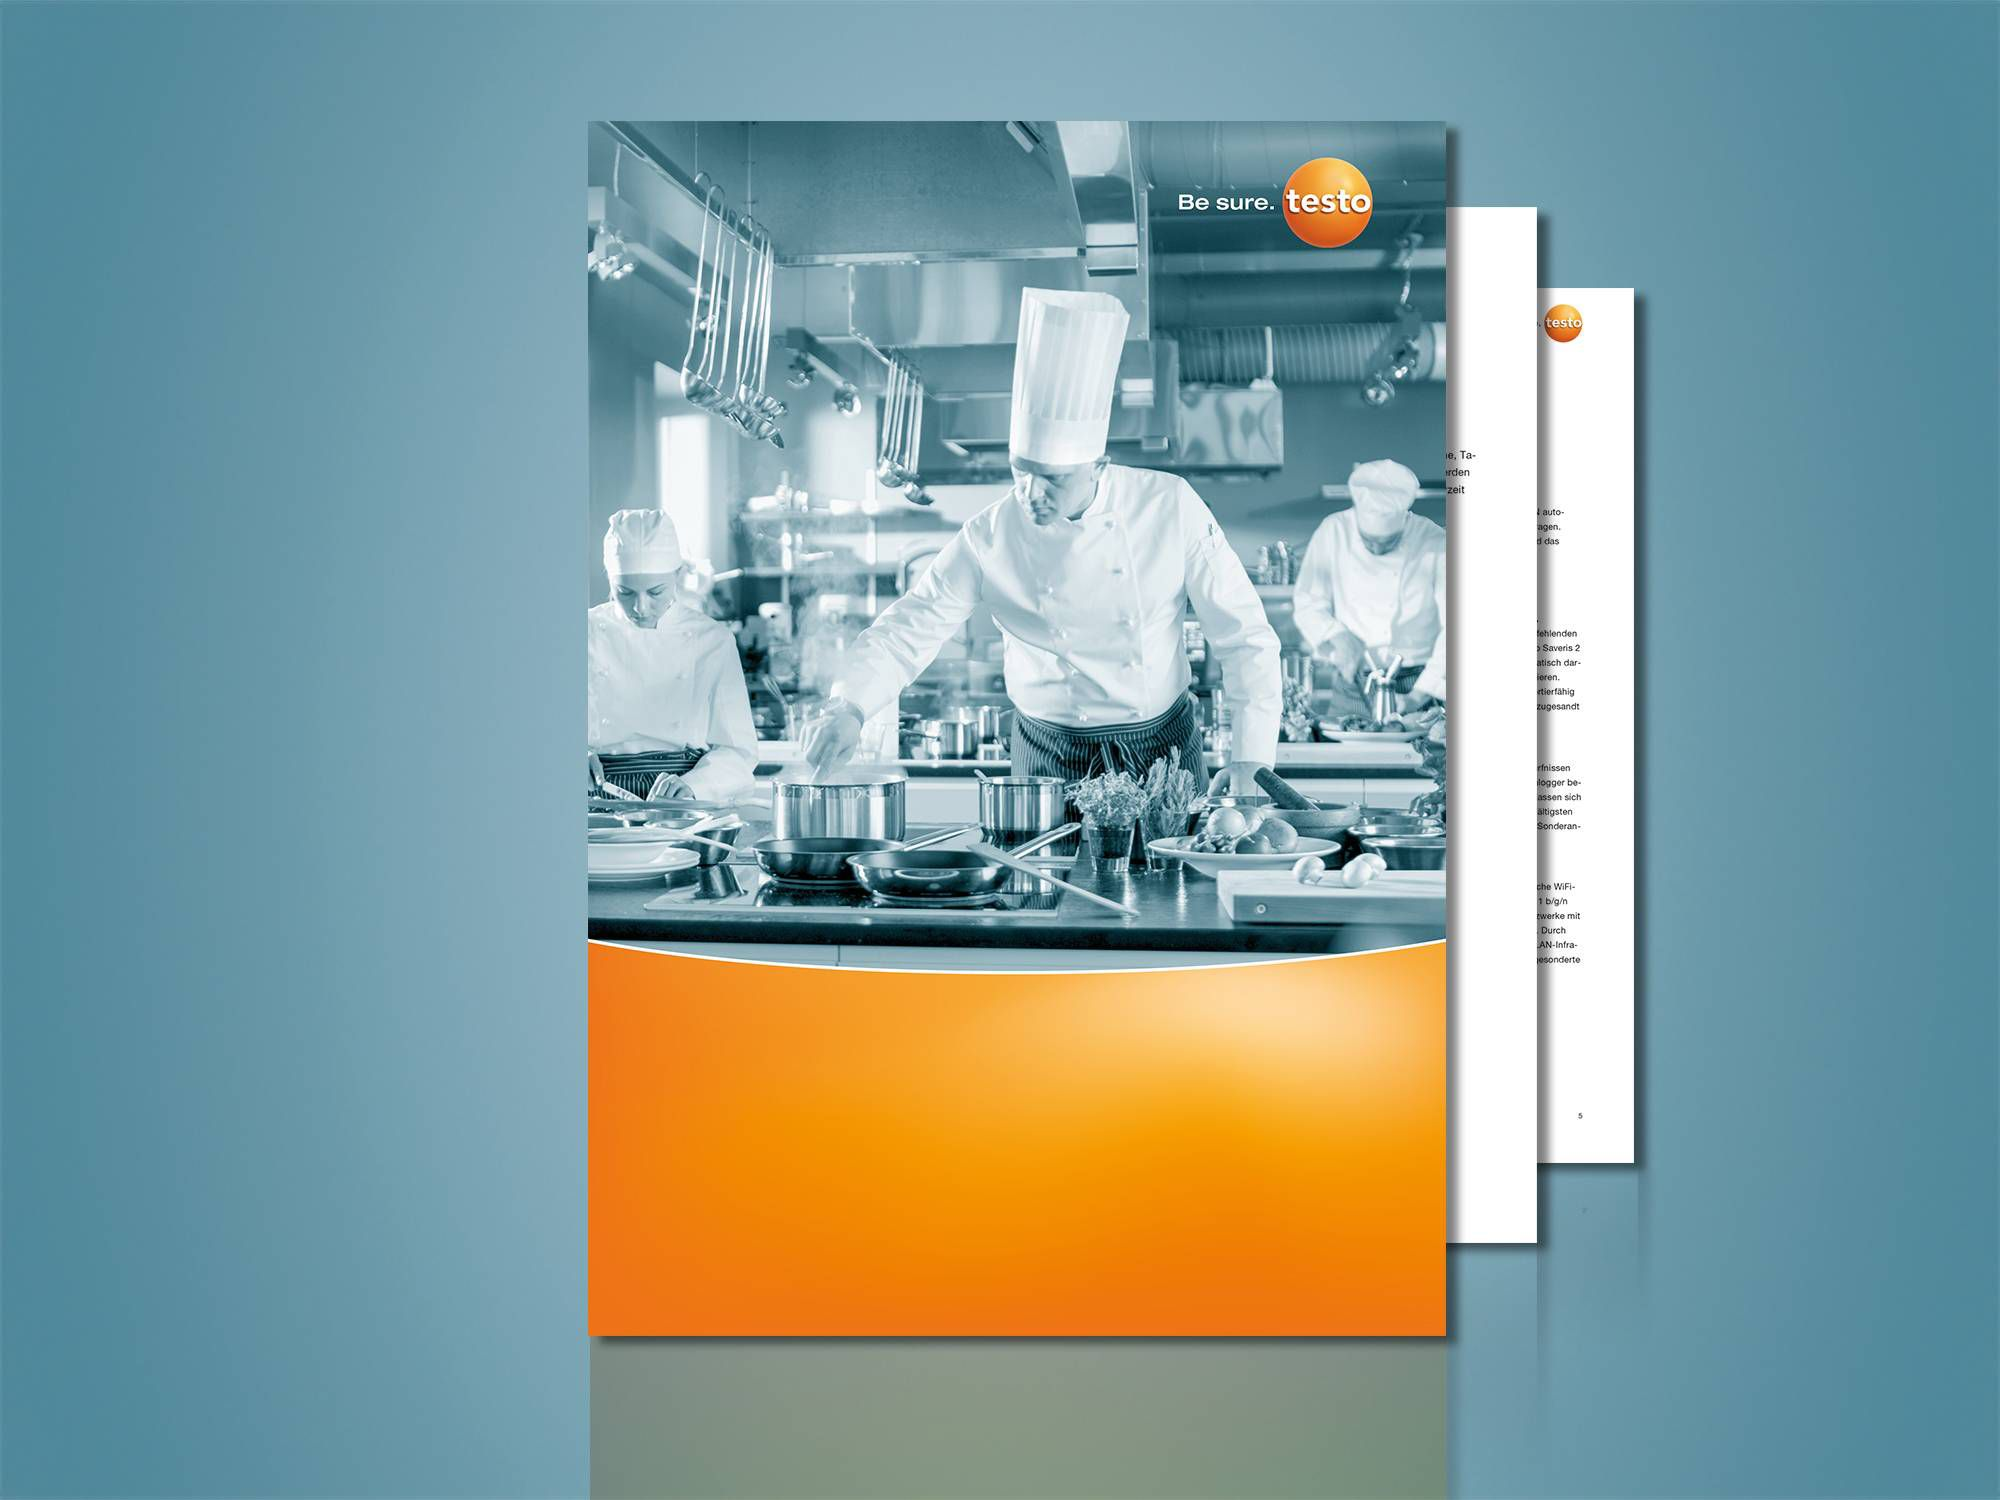 Application report food quality assurance and adherence to HACCP regulations in gastronomy